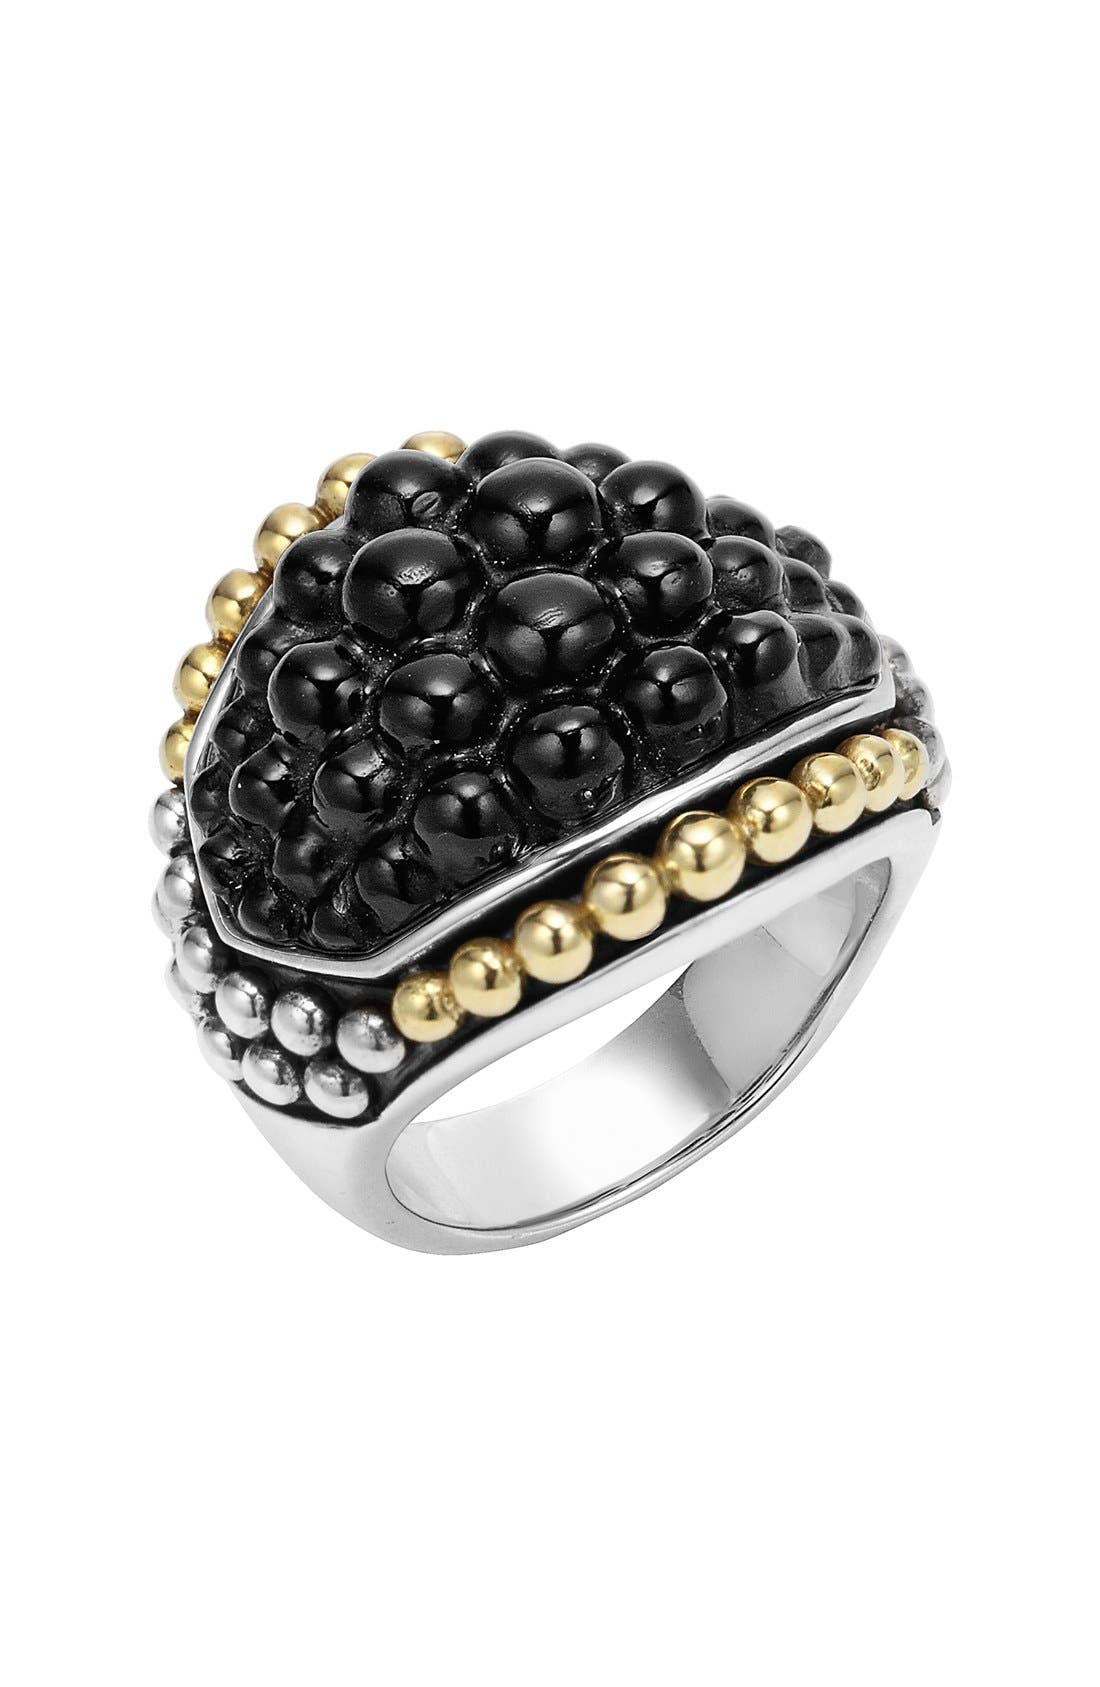 LAGOS Black Caviar Dome Ring